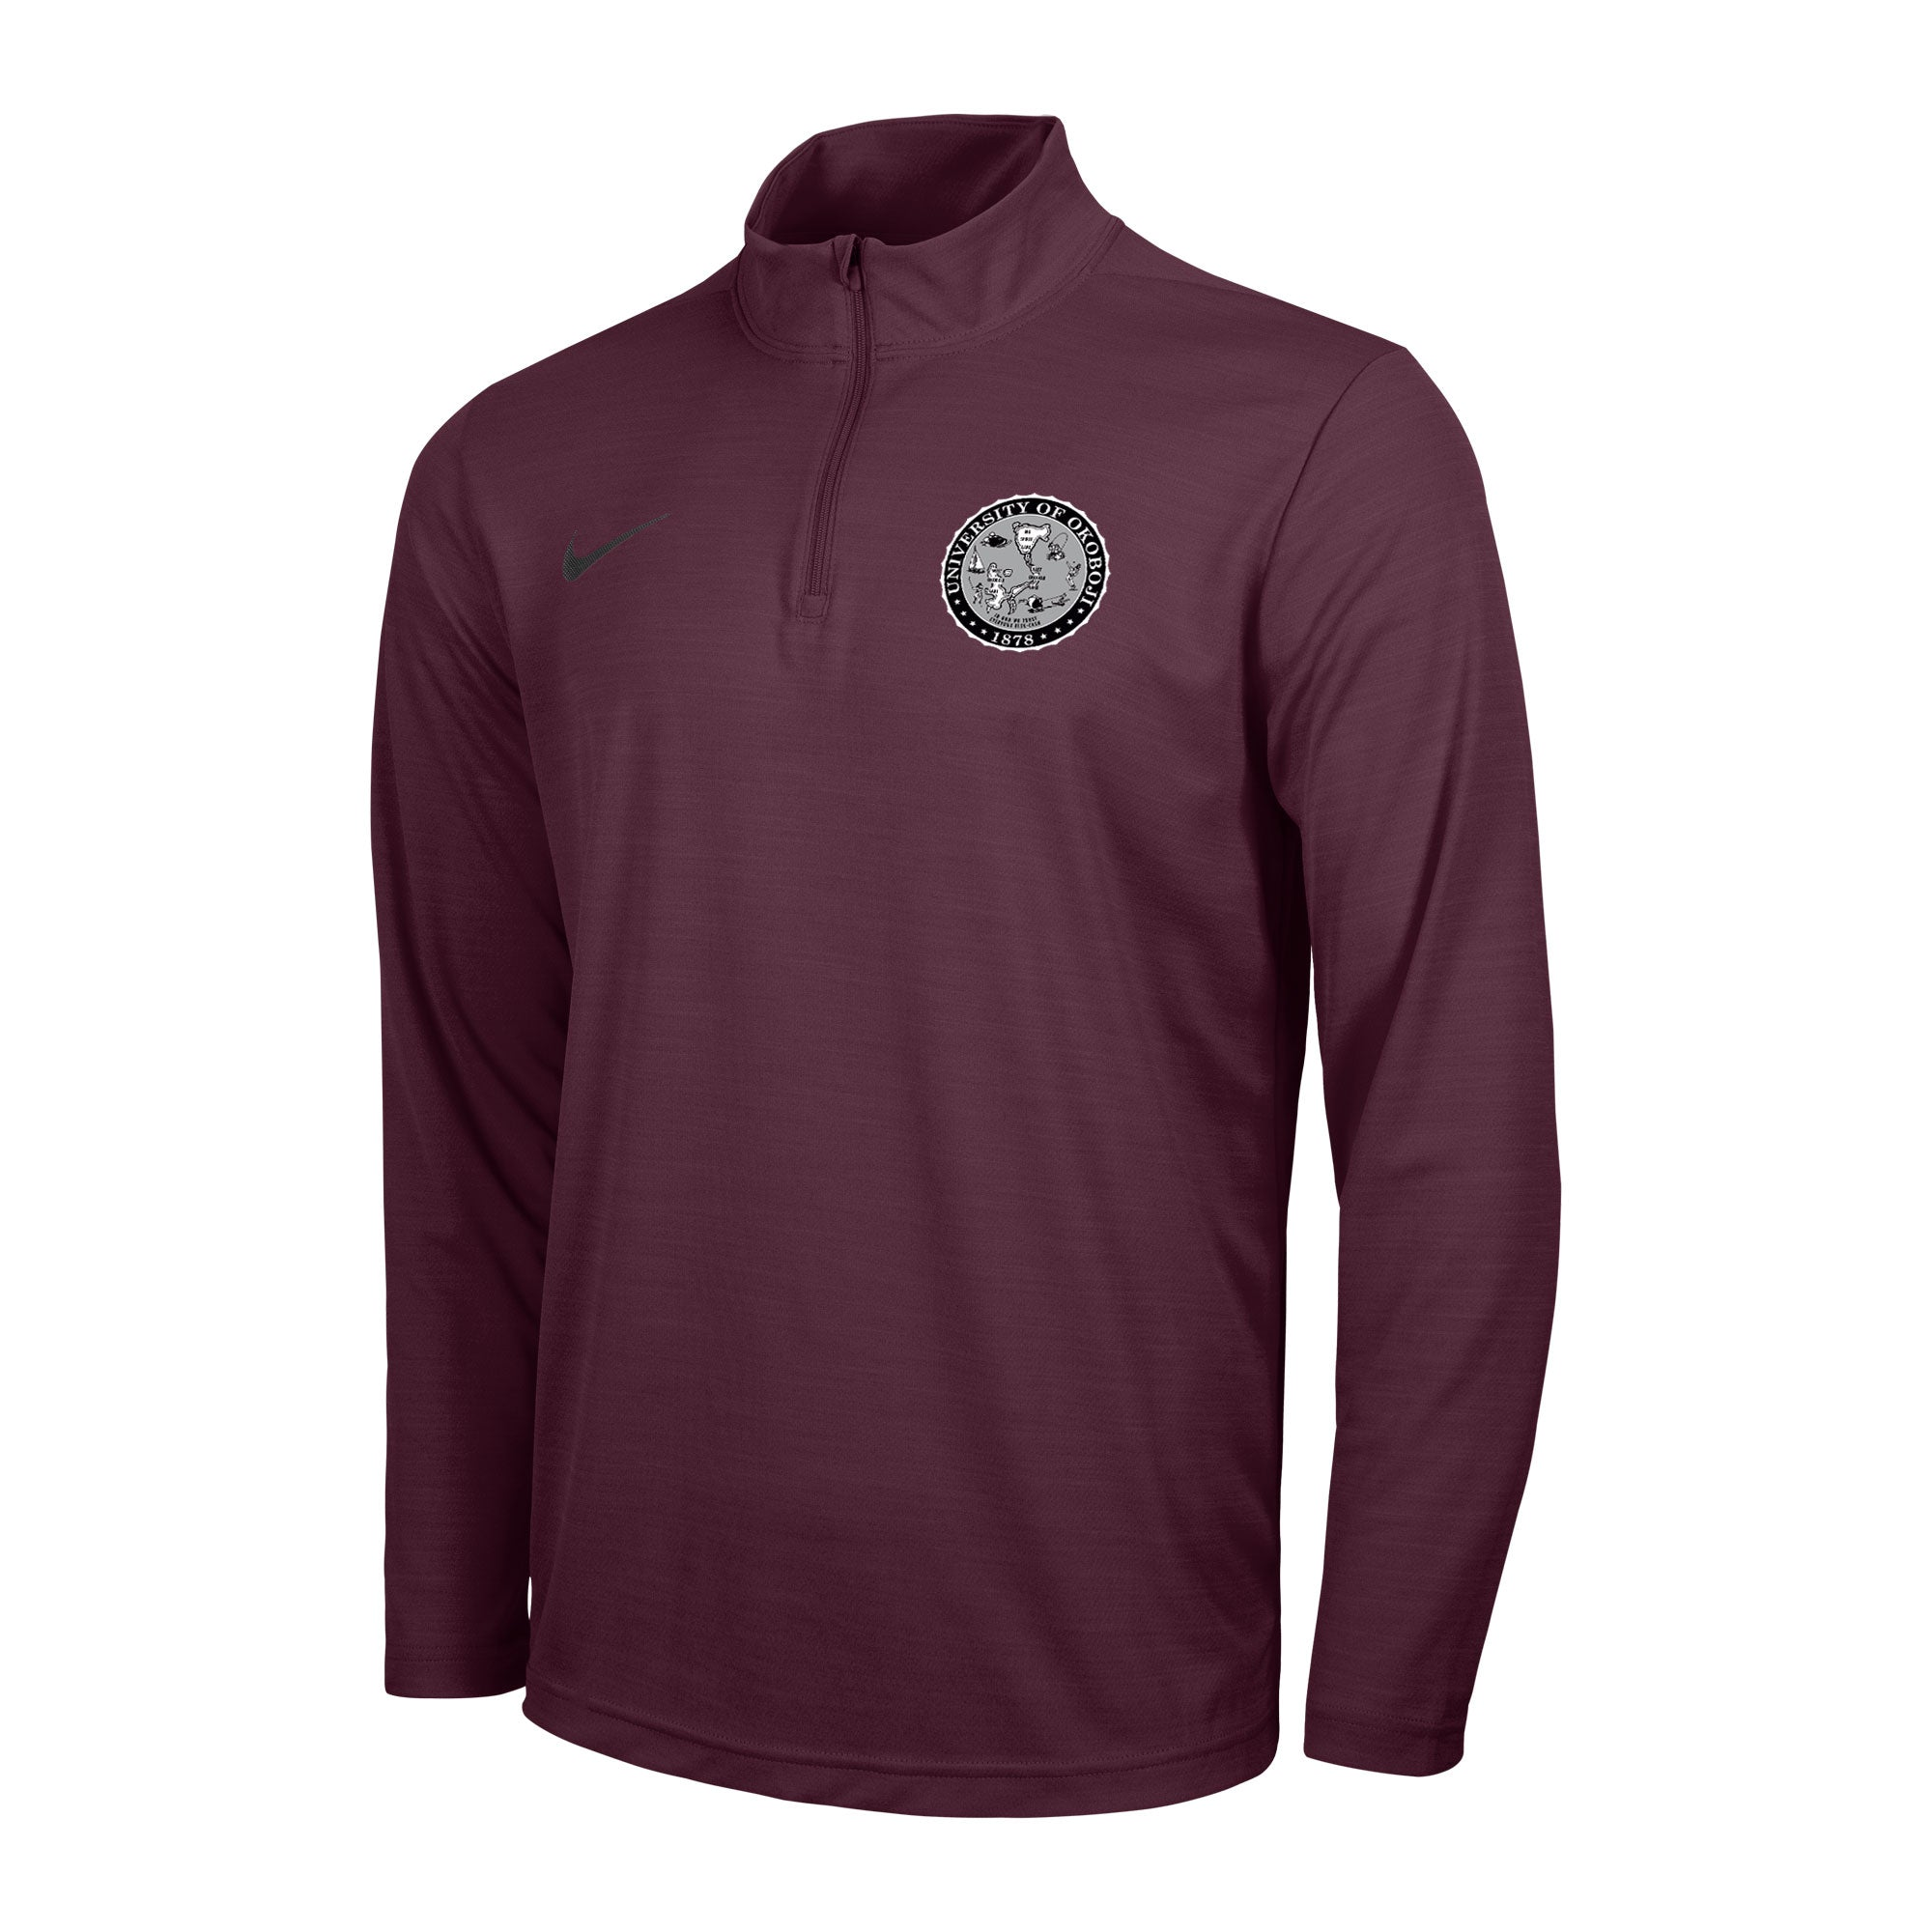 Men's Okoboji Intensity 1/4 Zip Top - Maroon